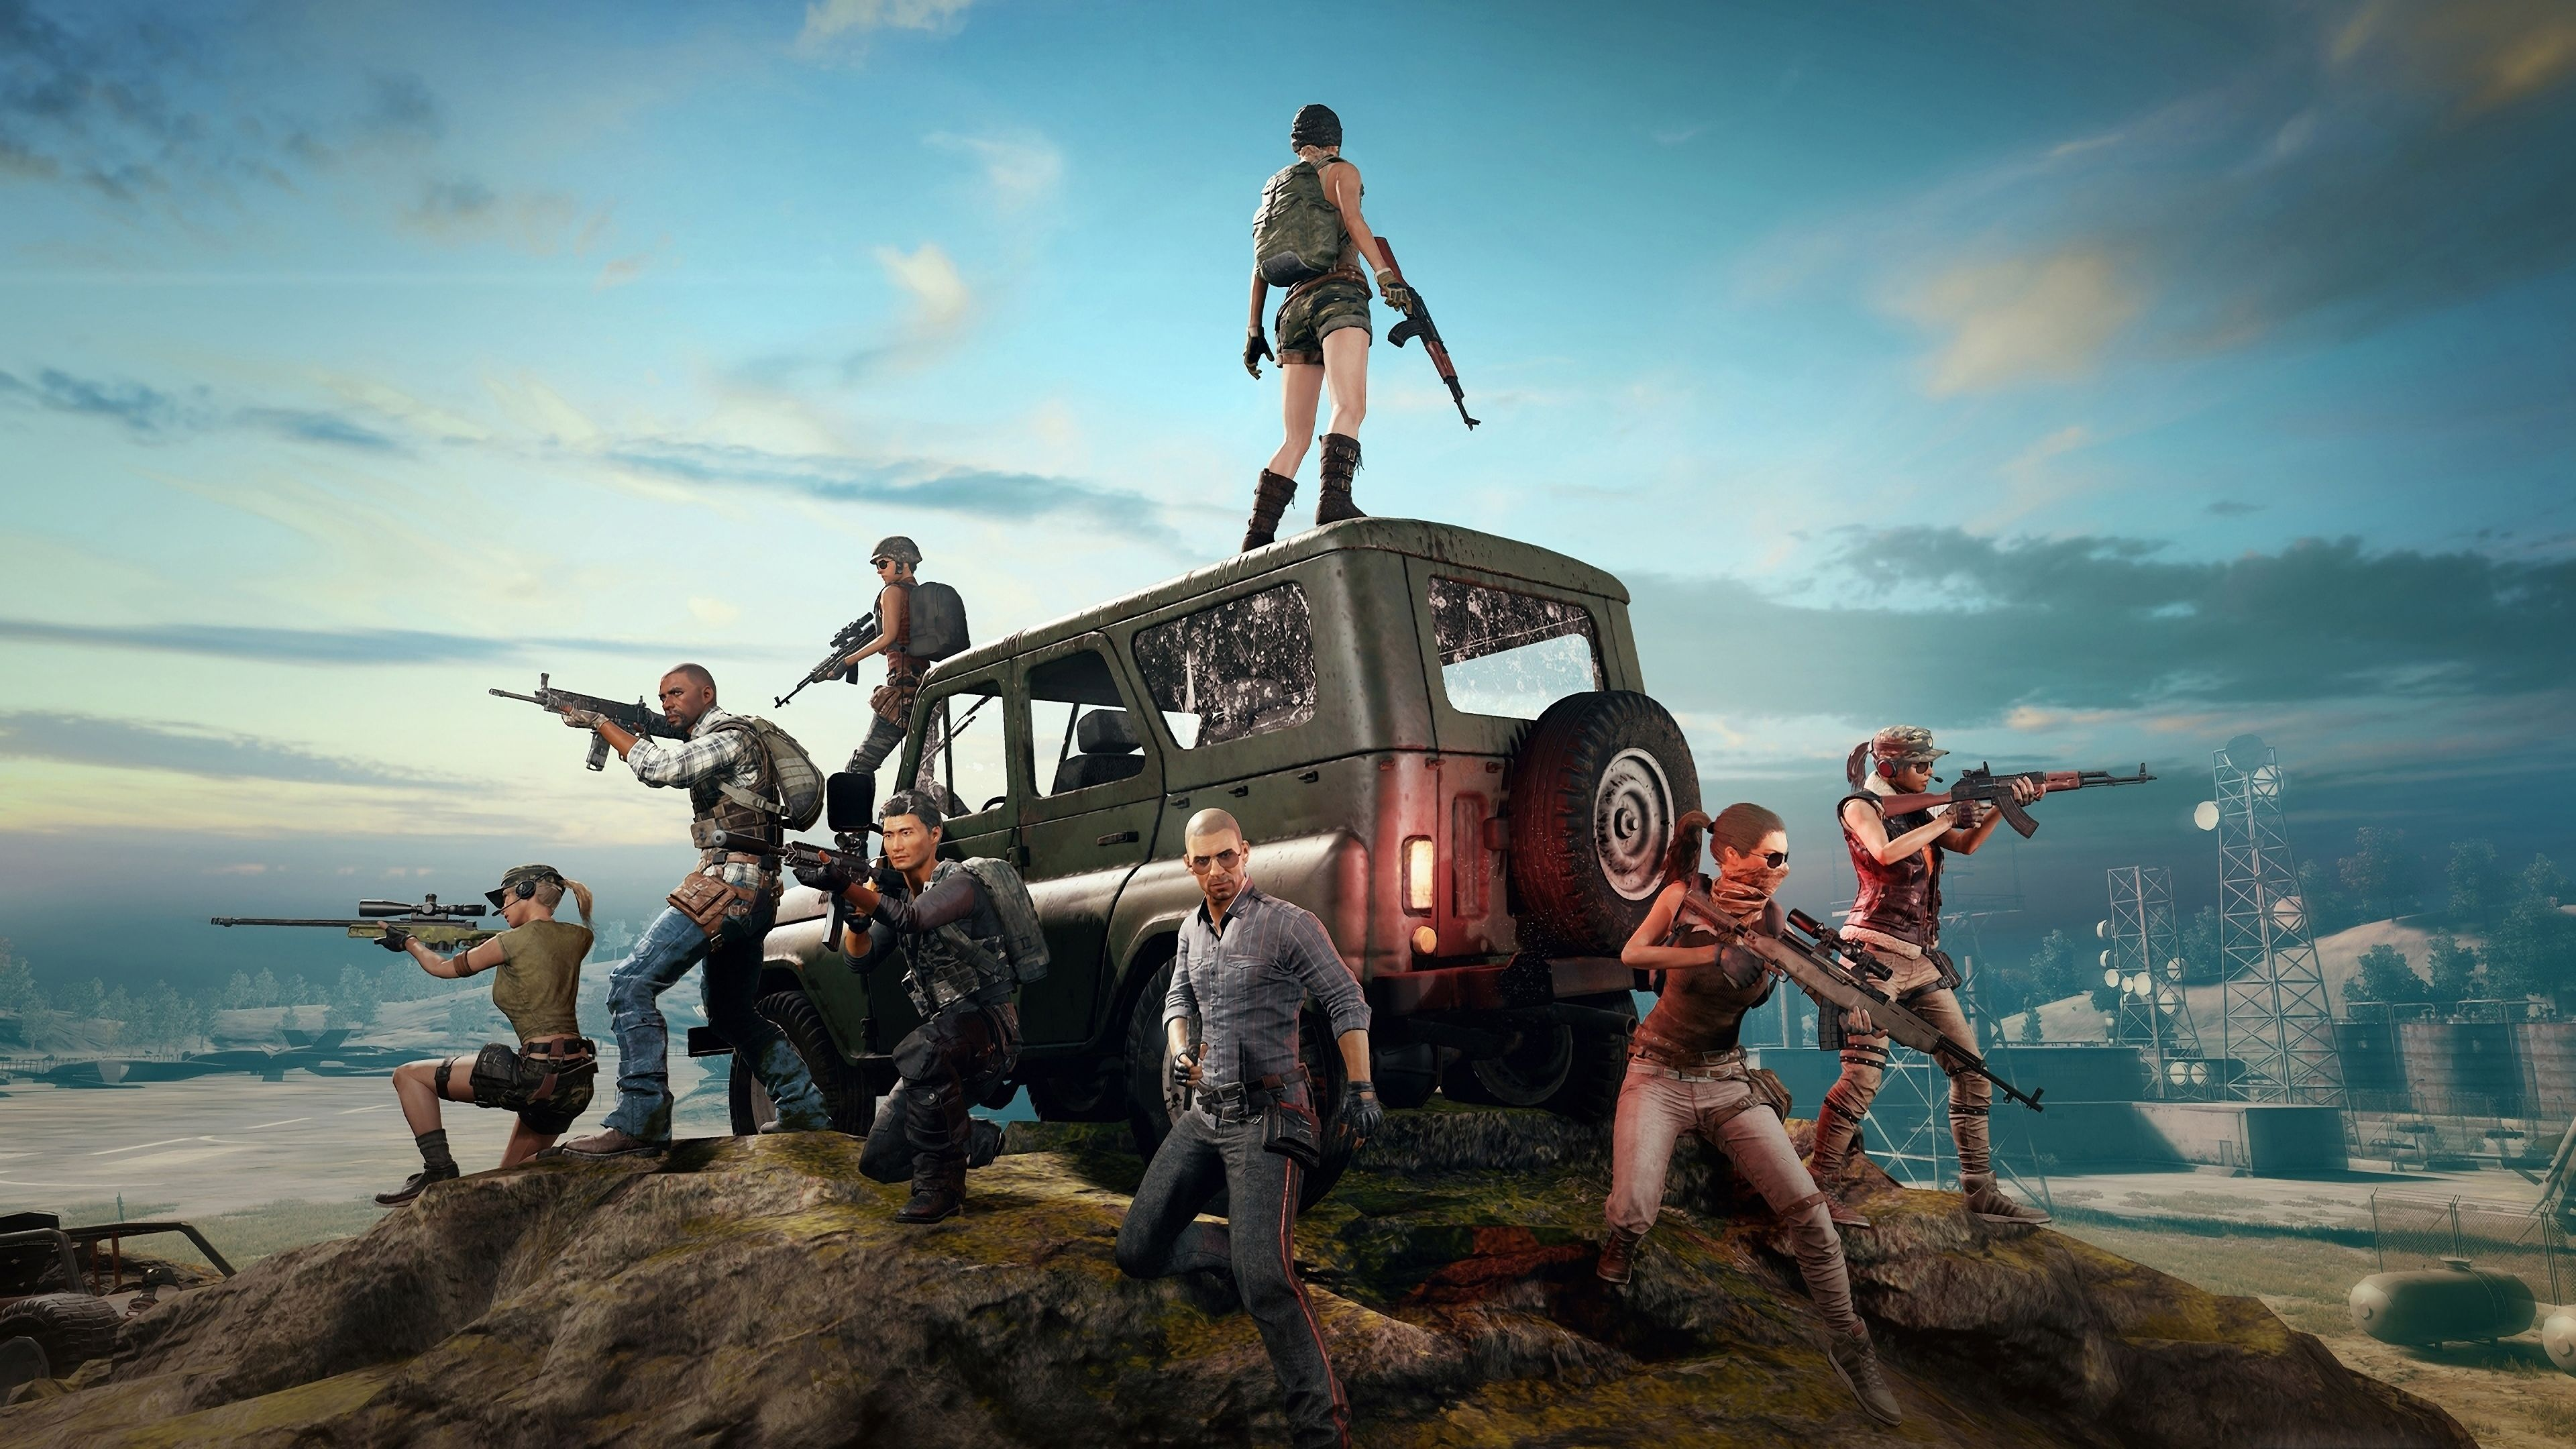 wp3276765 pubg 4k wallpapers - Player Unknown's Battlegrounds (PUBG) 4K - Pubg wallpaper phone, pubg wallpaper iphone, pubg wallpaper 1920x1080 hd, pubg hd wallpapers, pubg 4k wallpapers, Player Unknown's Battlegrounds 4k wallpapers